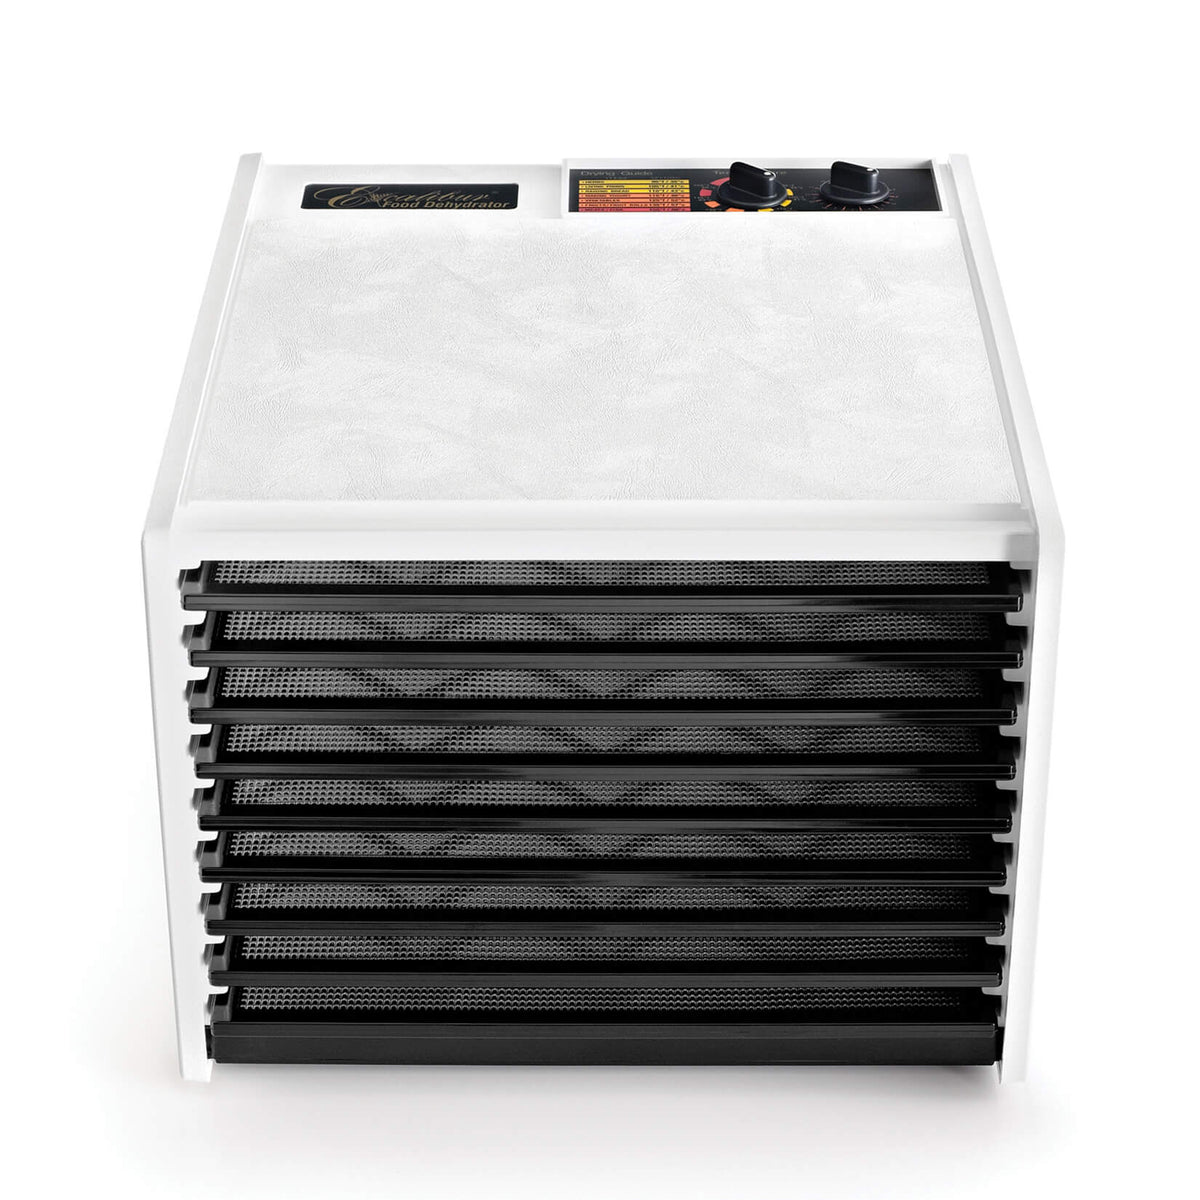 Excalibur 4926TW white 9 tray dehydrator front view with door open and trays in.